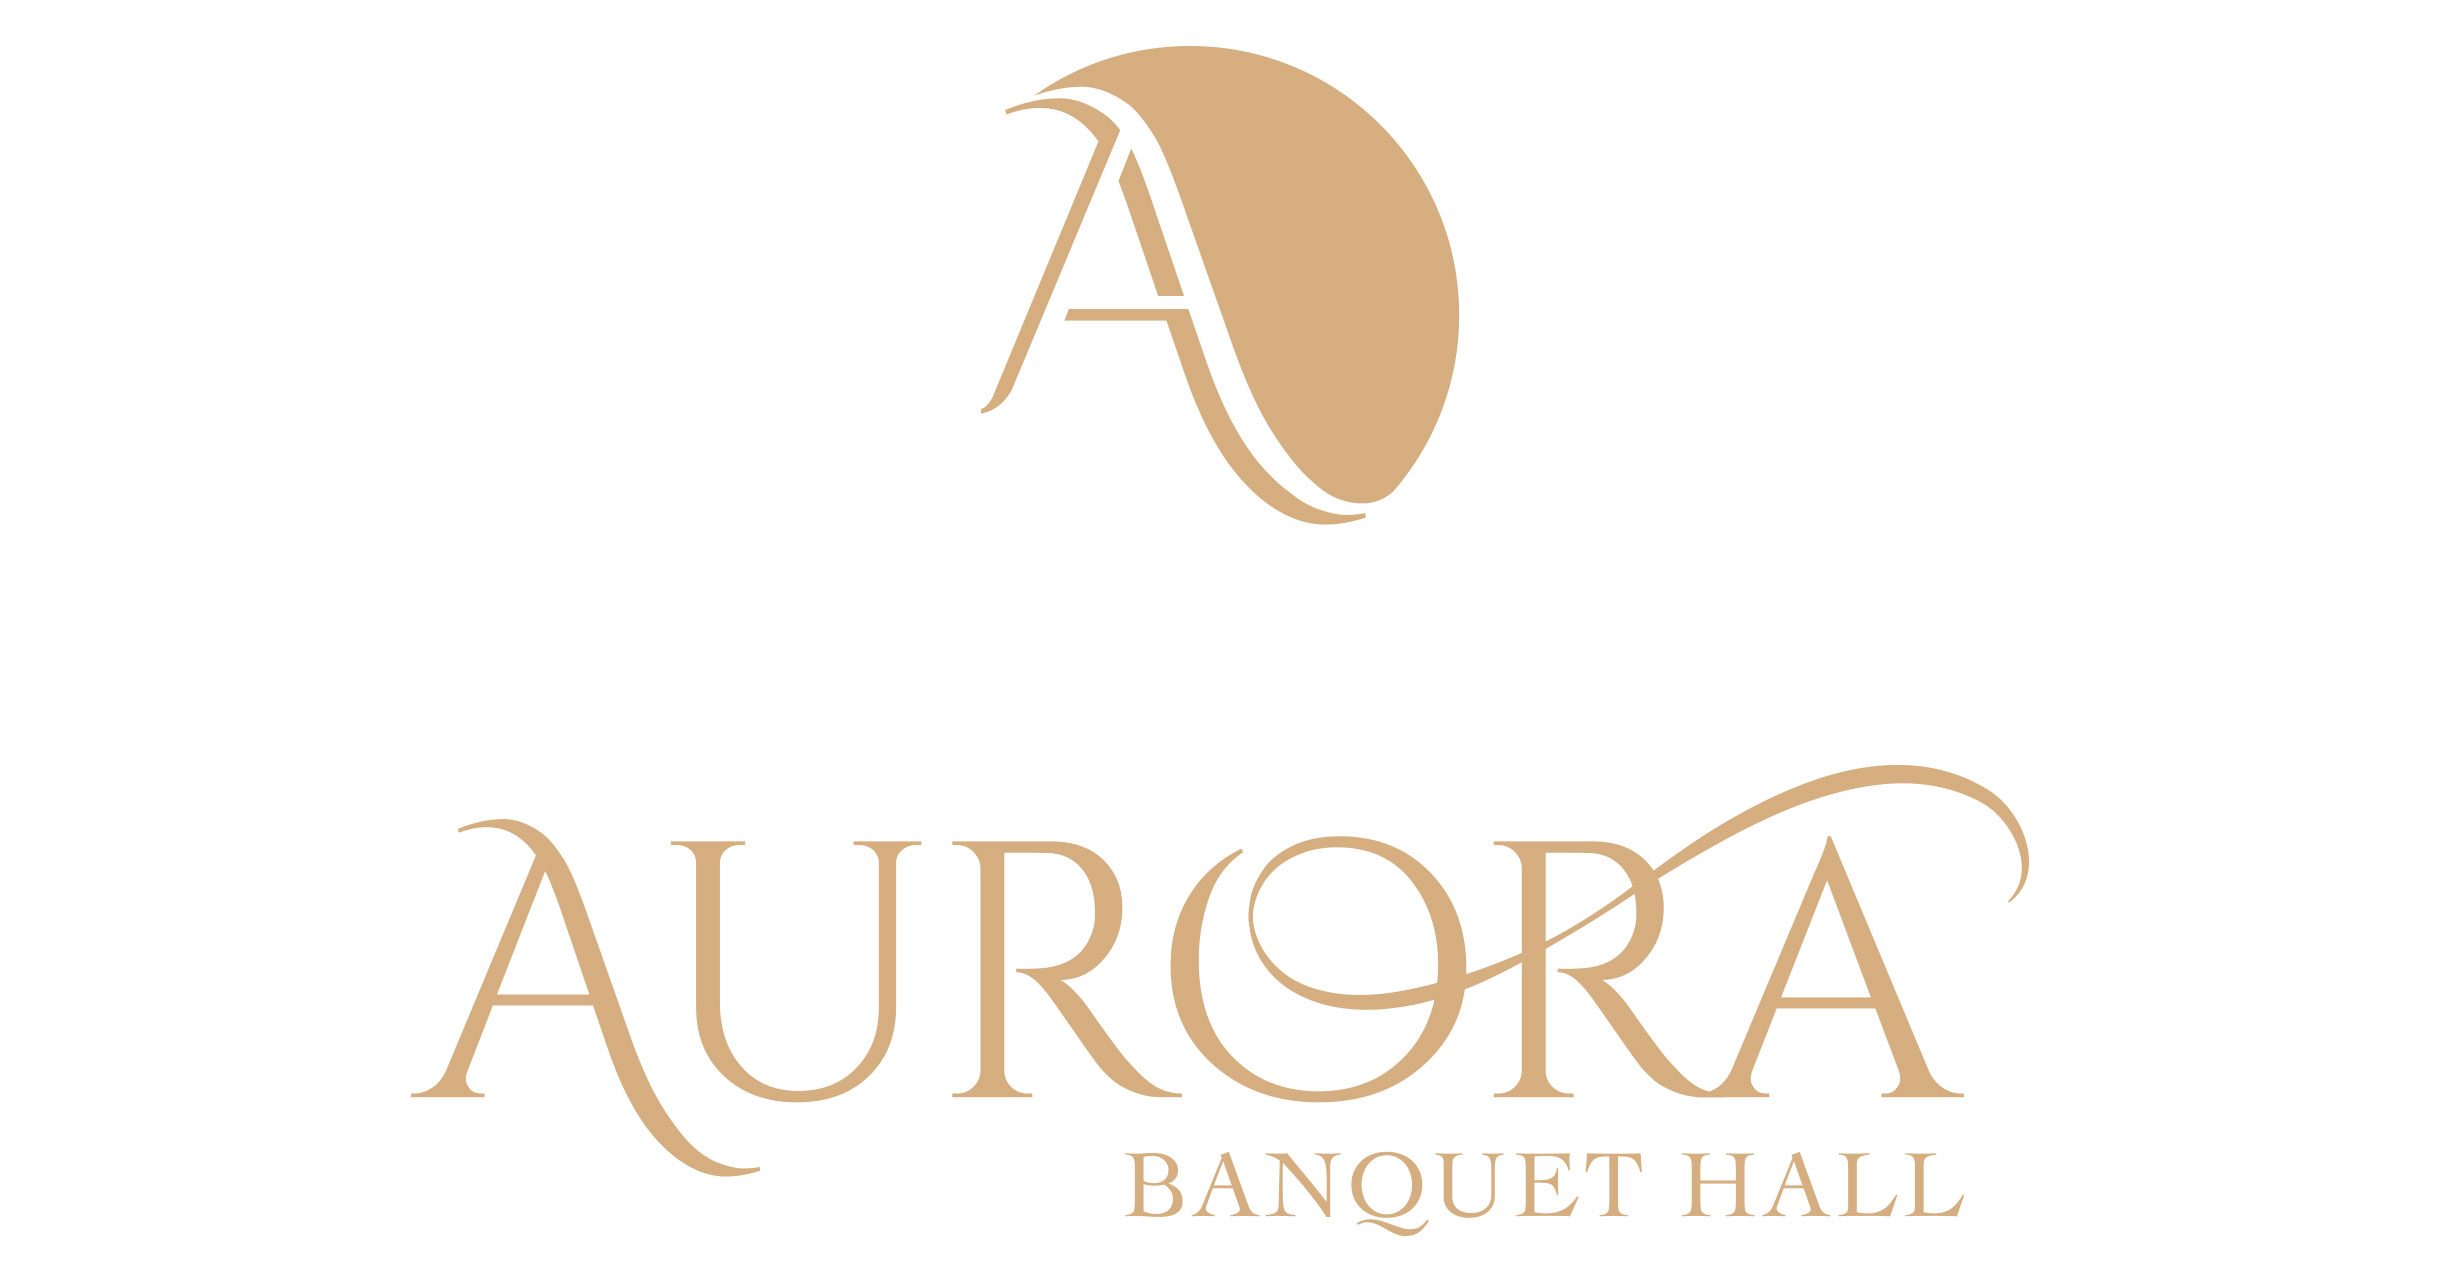 Pleasing Banquet Hall Logo Design In Los Angeles Home Interior And Landscaping Eliaenasavecom